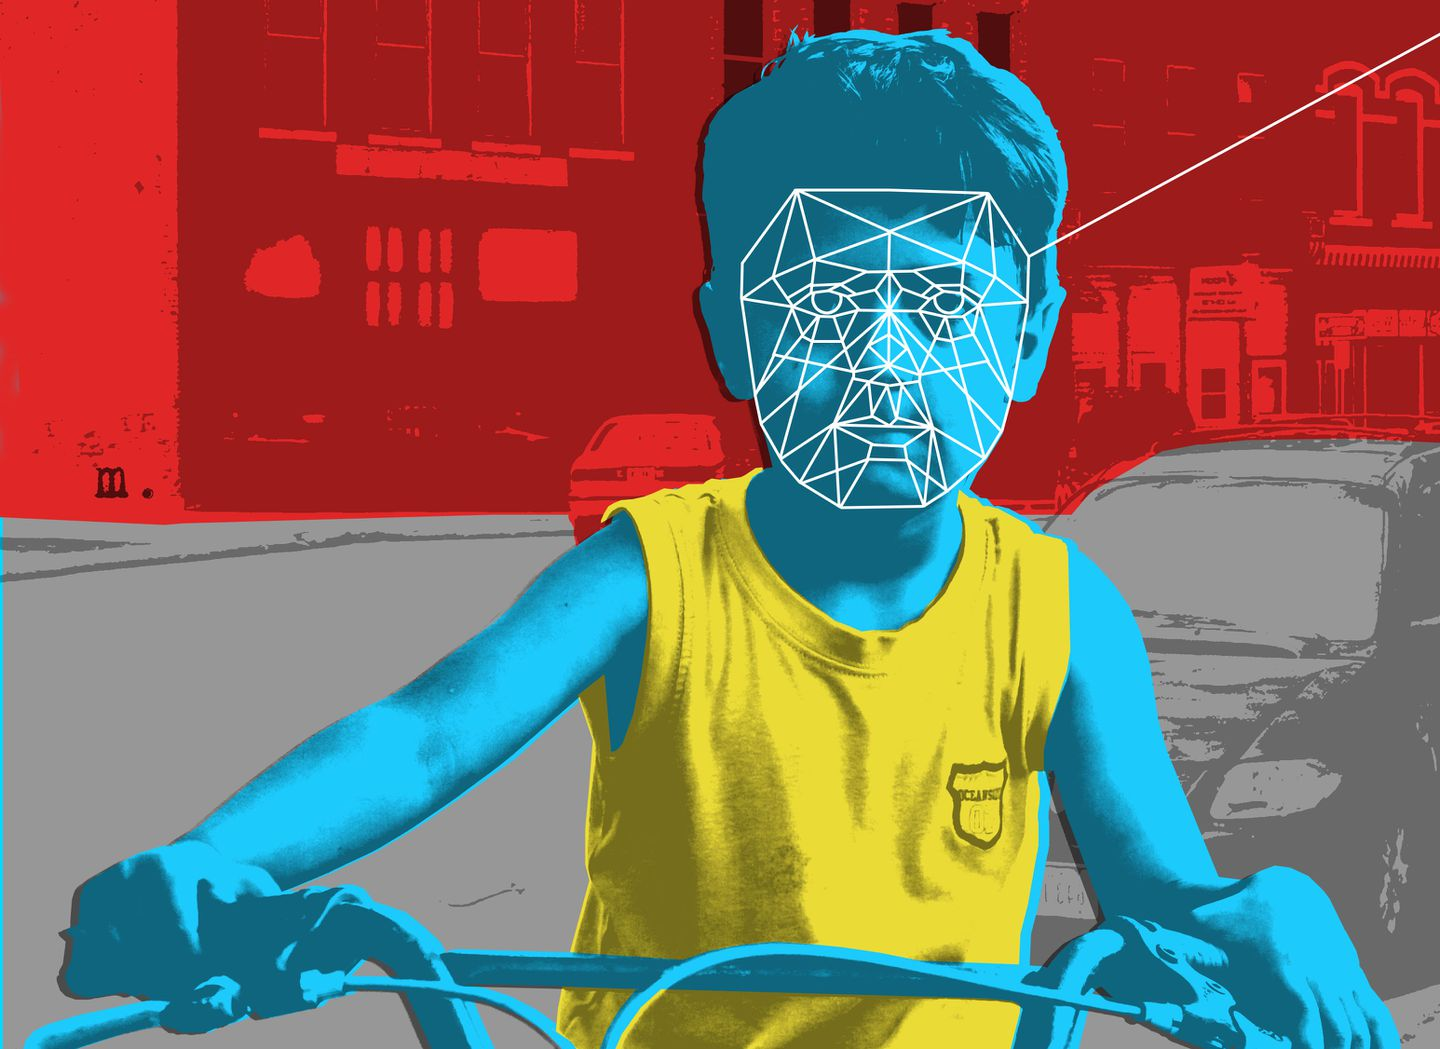 Facial recognition may reveal things we'd rather not tell the world. Are we ready?